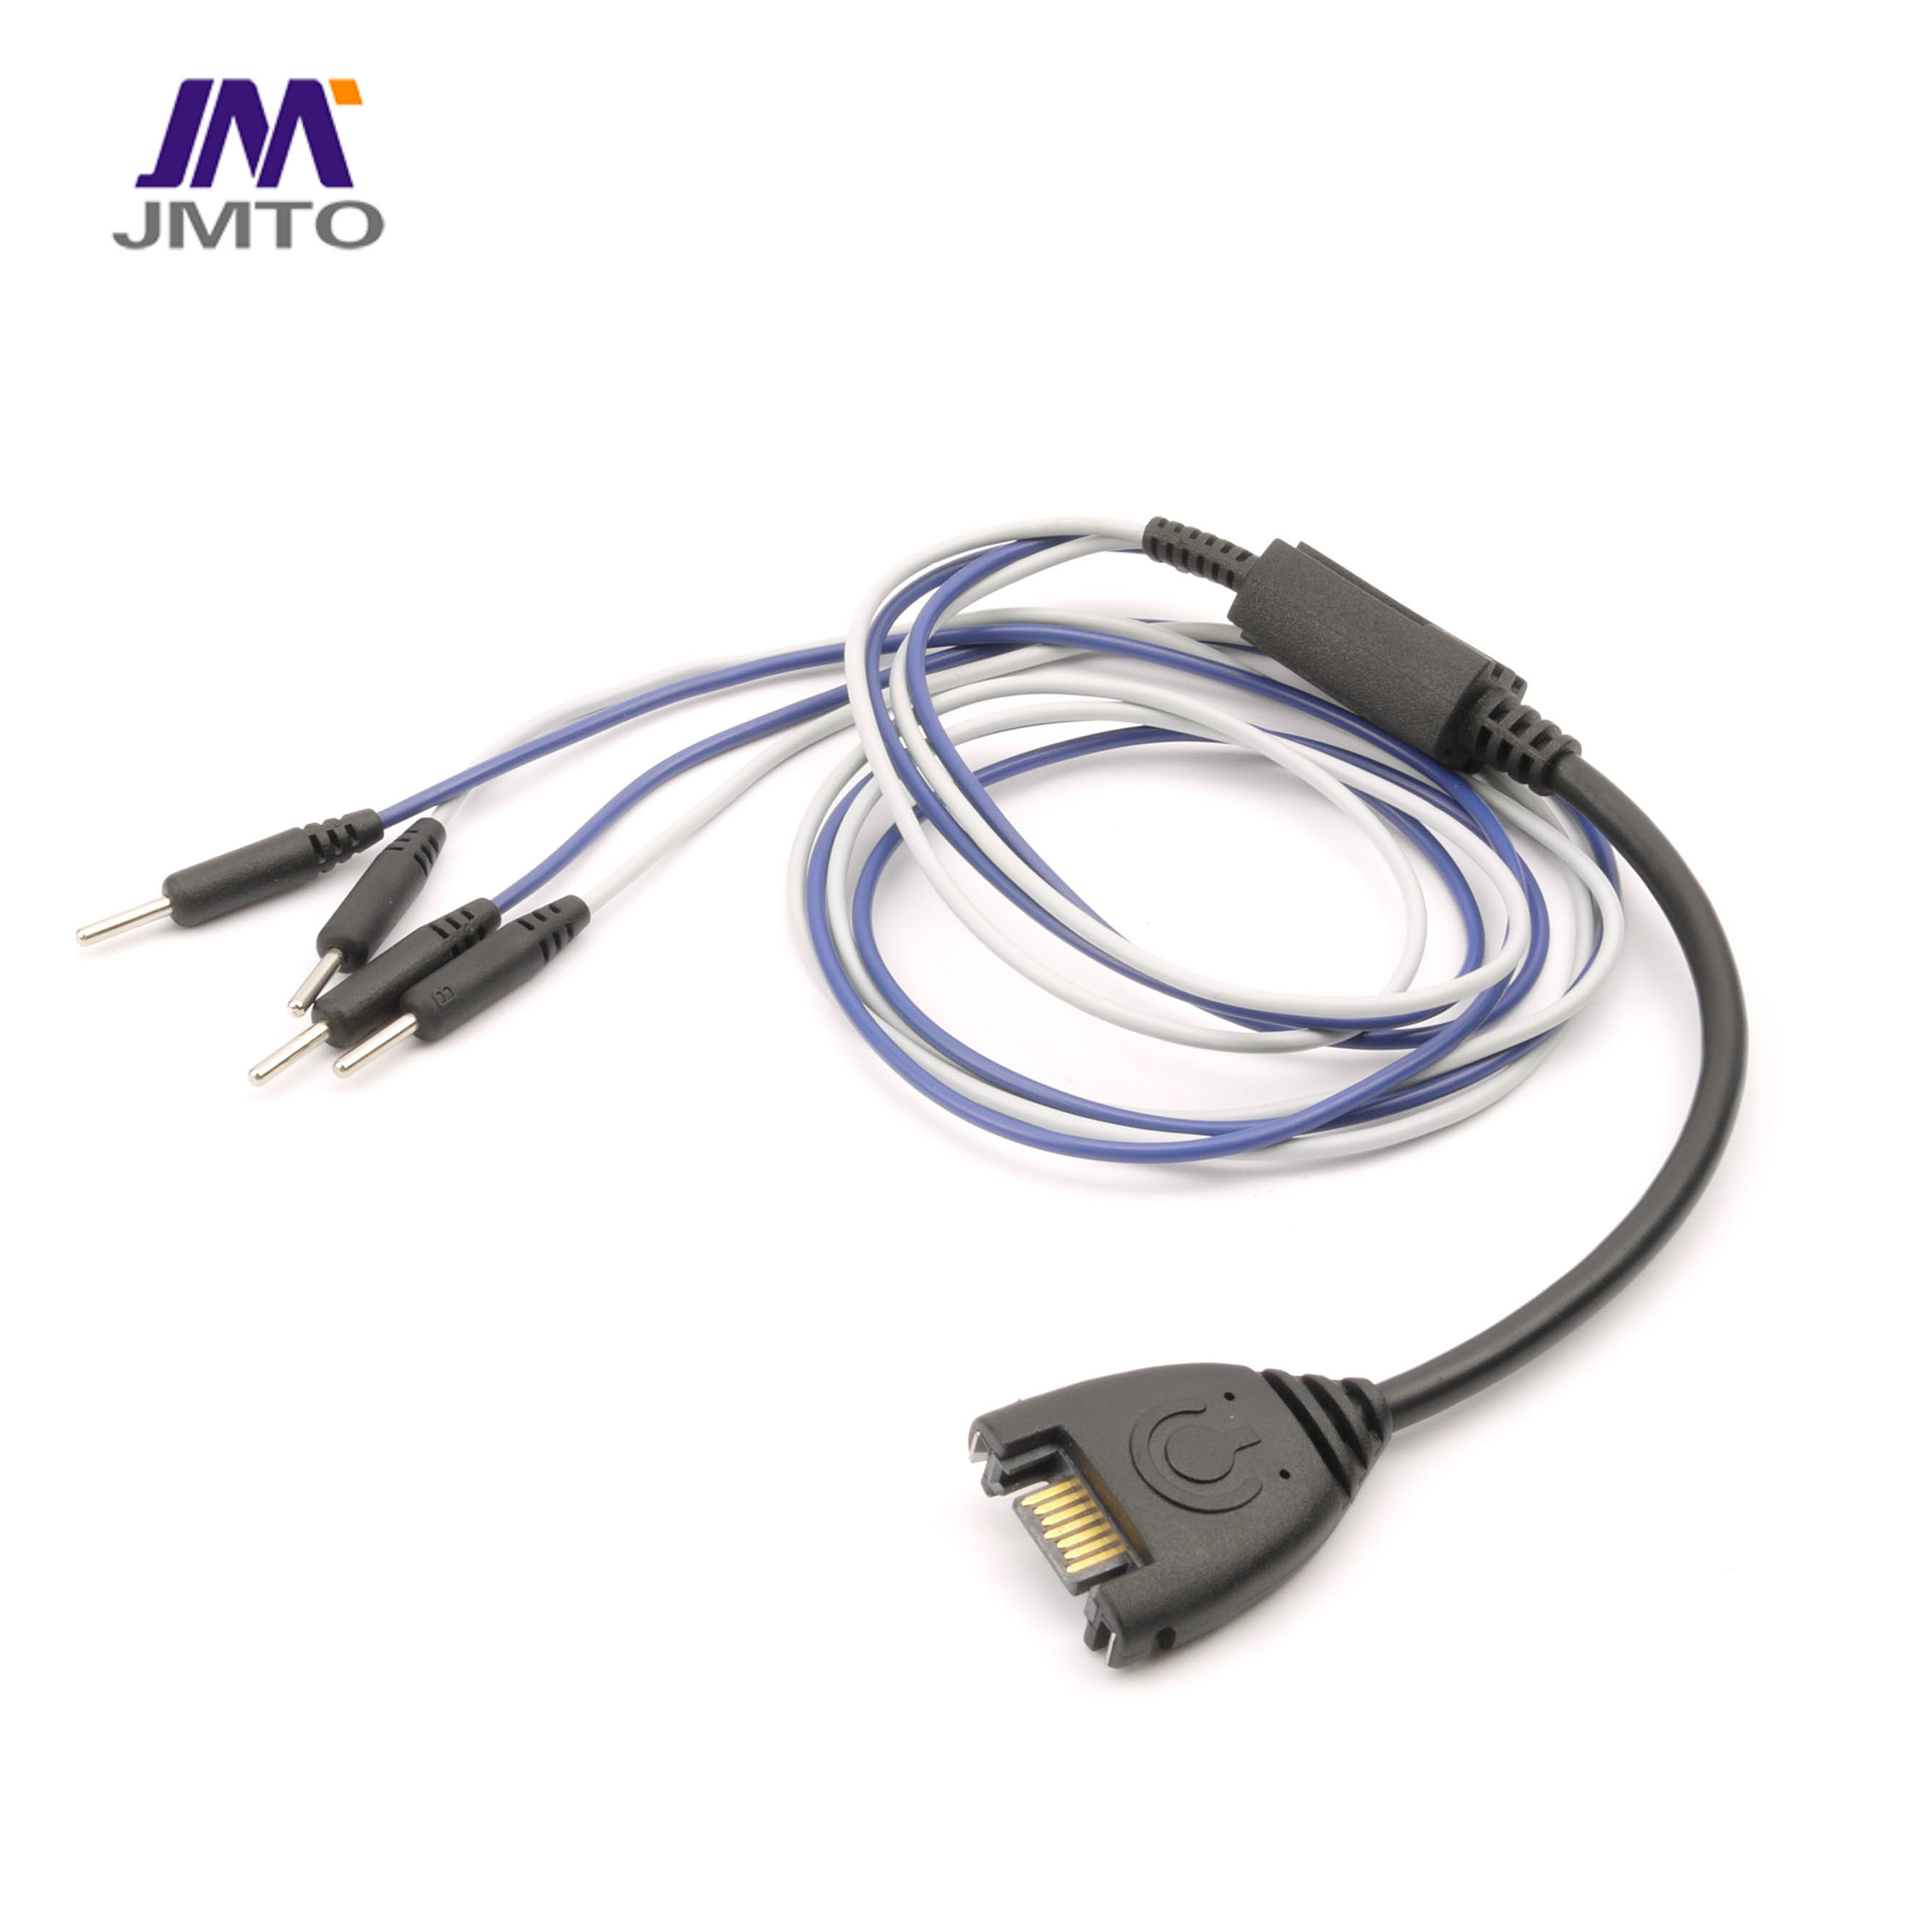 SATA 7P TO Electrode needle Cable Suitable for slimming belt controller wiring.